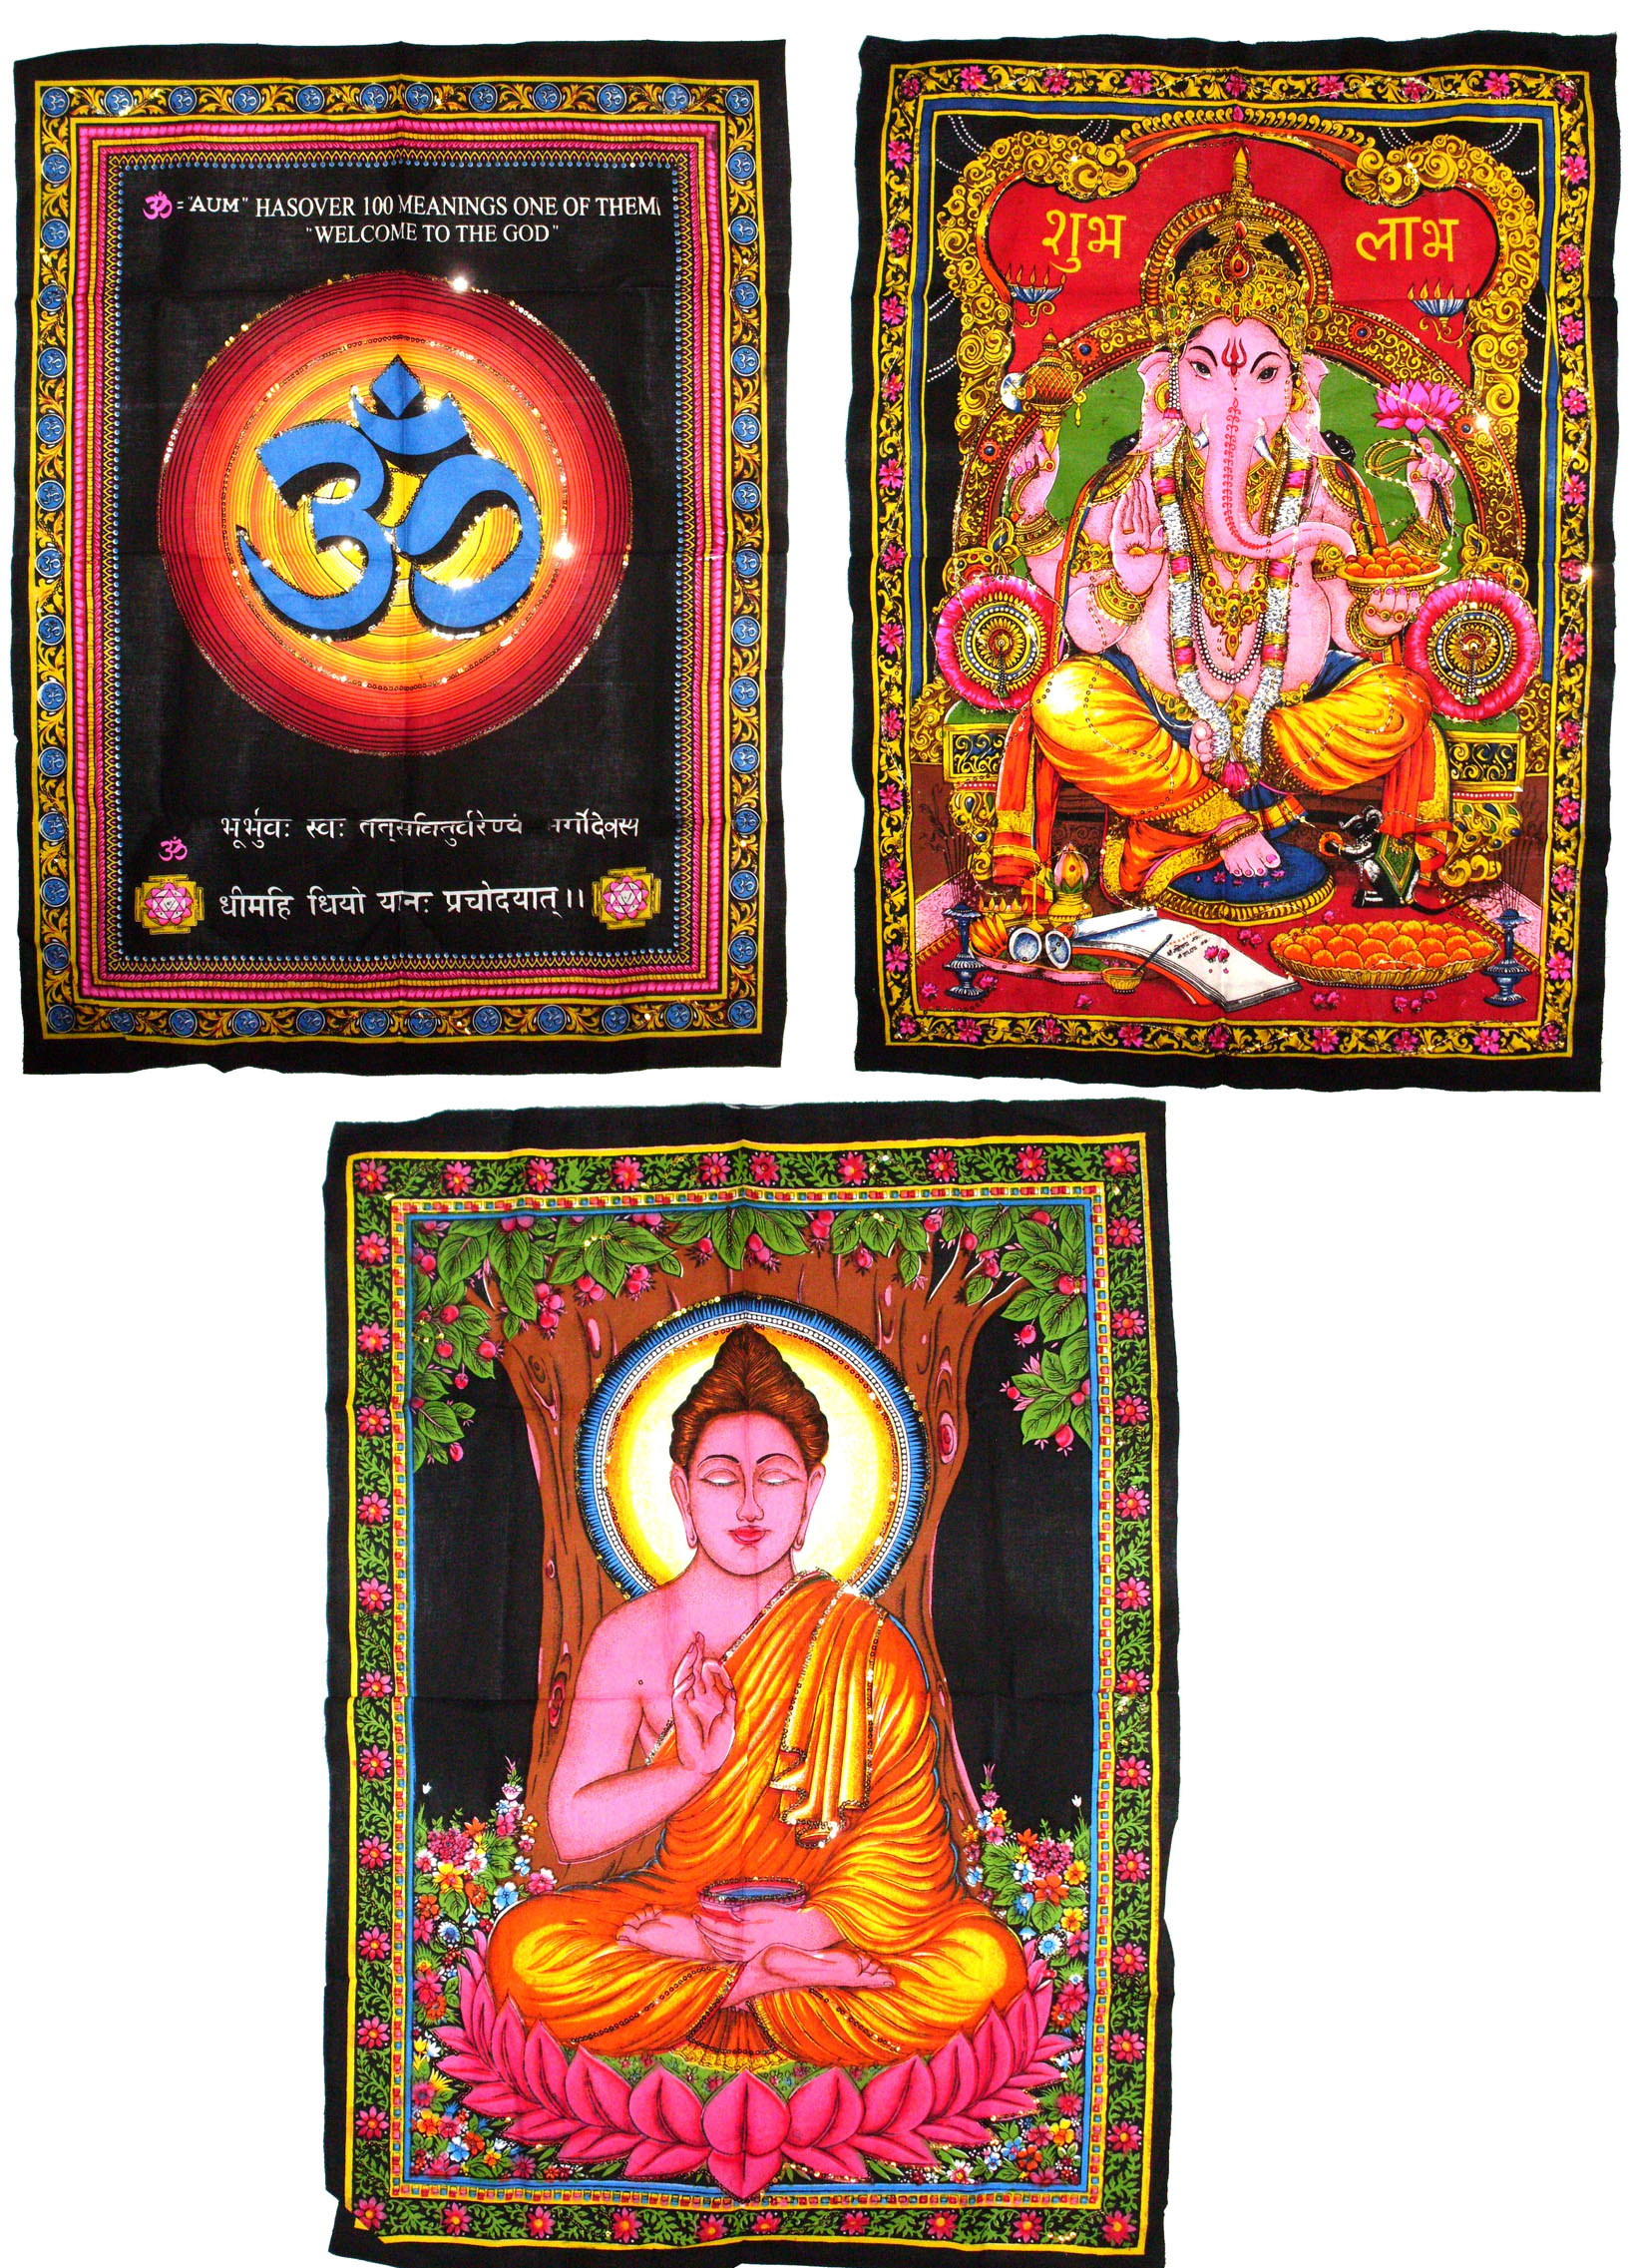 Religious Wall Hangings - Case of 72 pcs